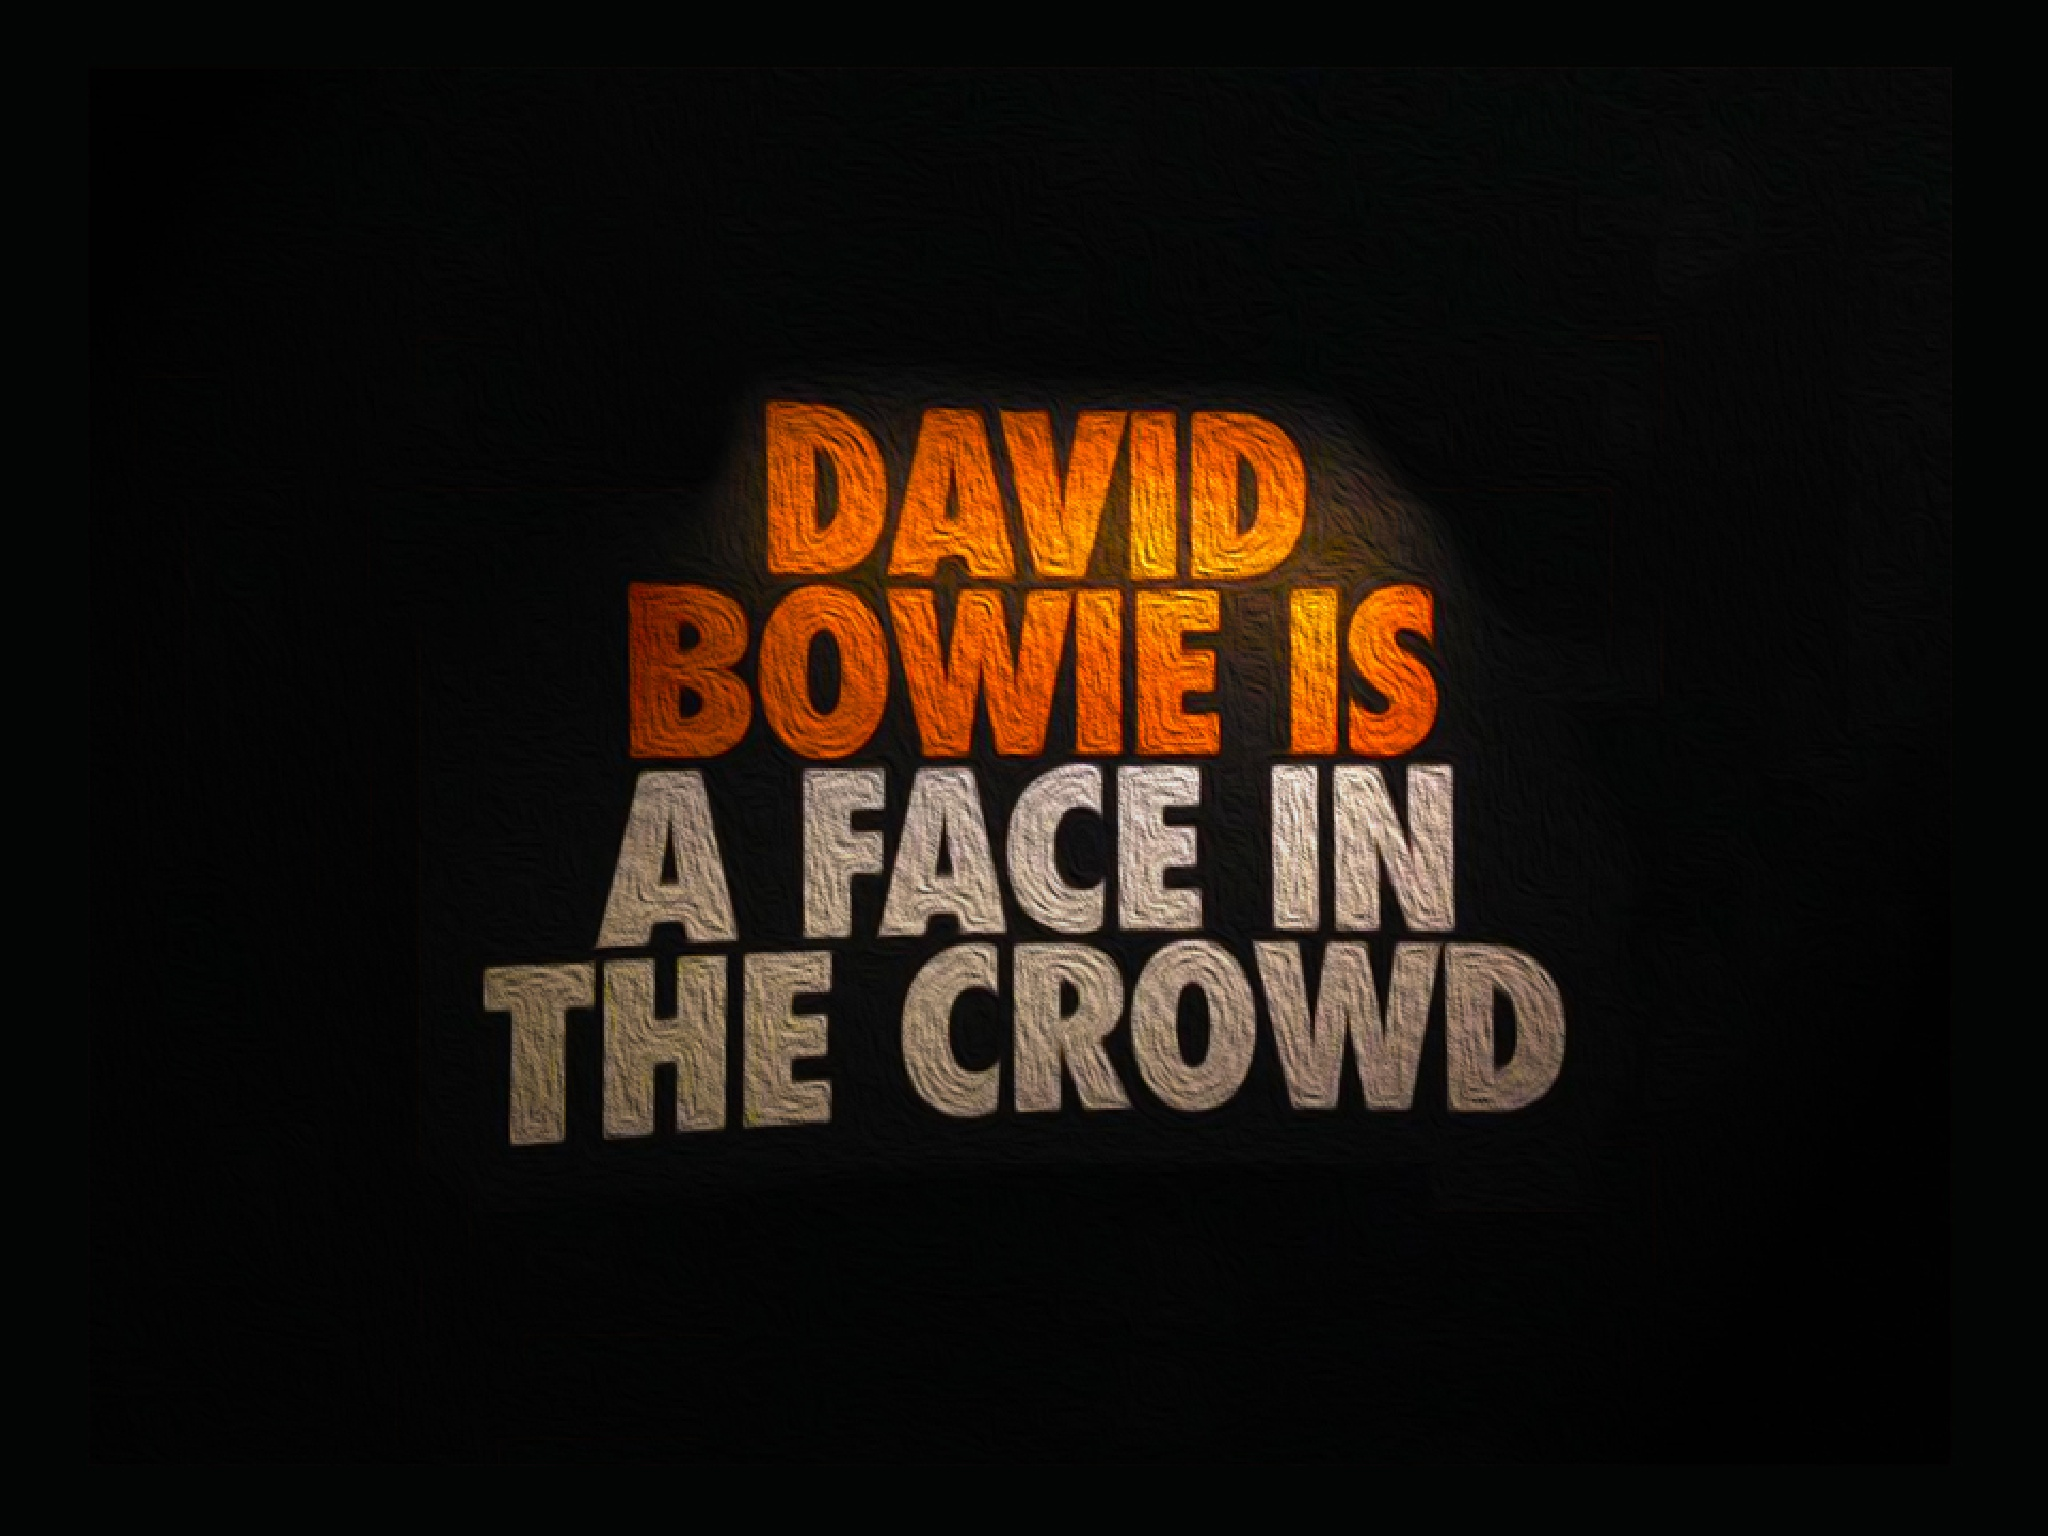 David Bowie R.I.P 10-01-2016 thanks you for the music by rob.sliep.3